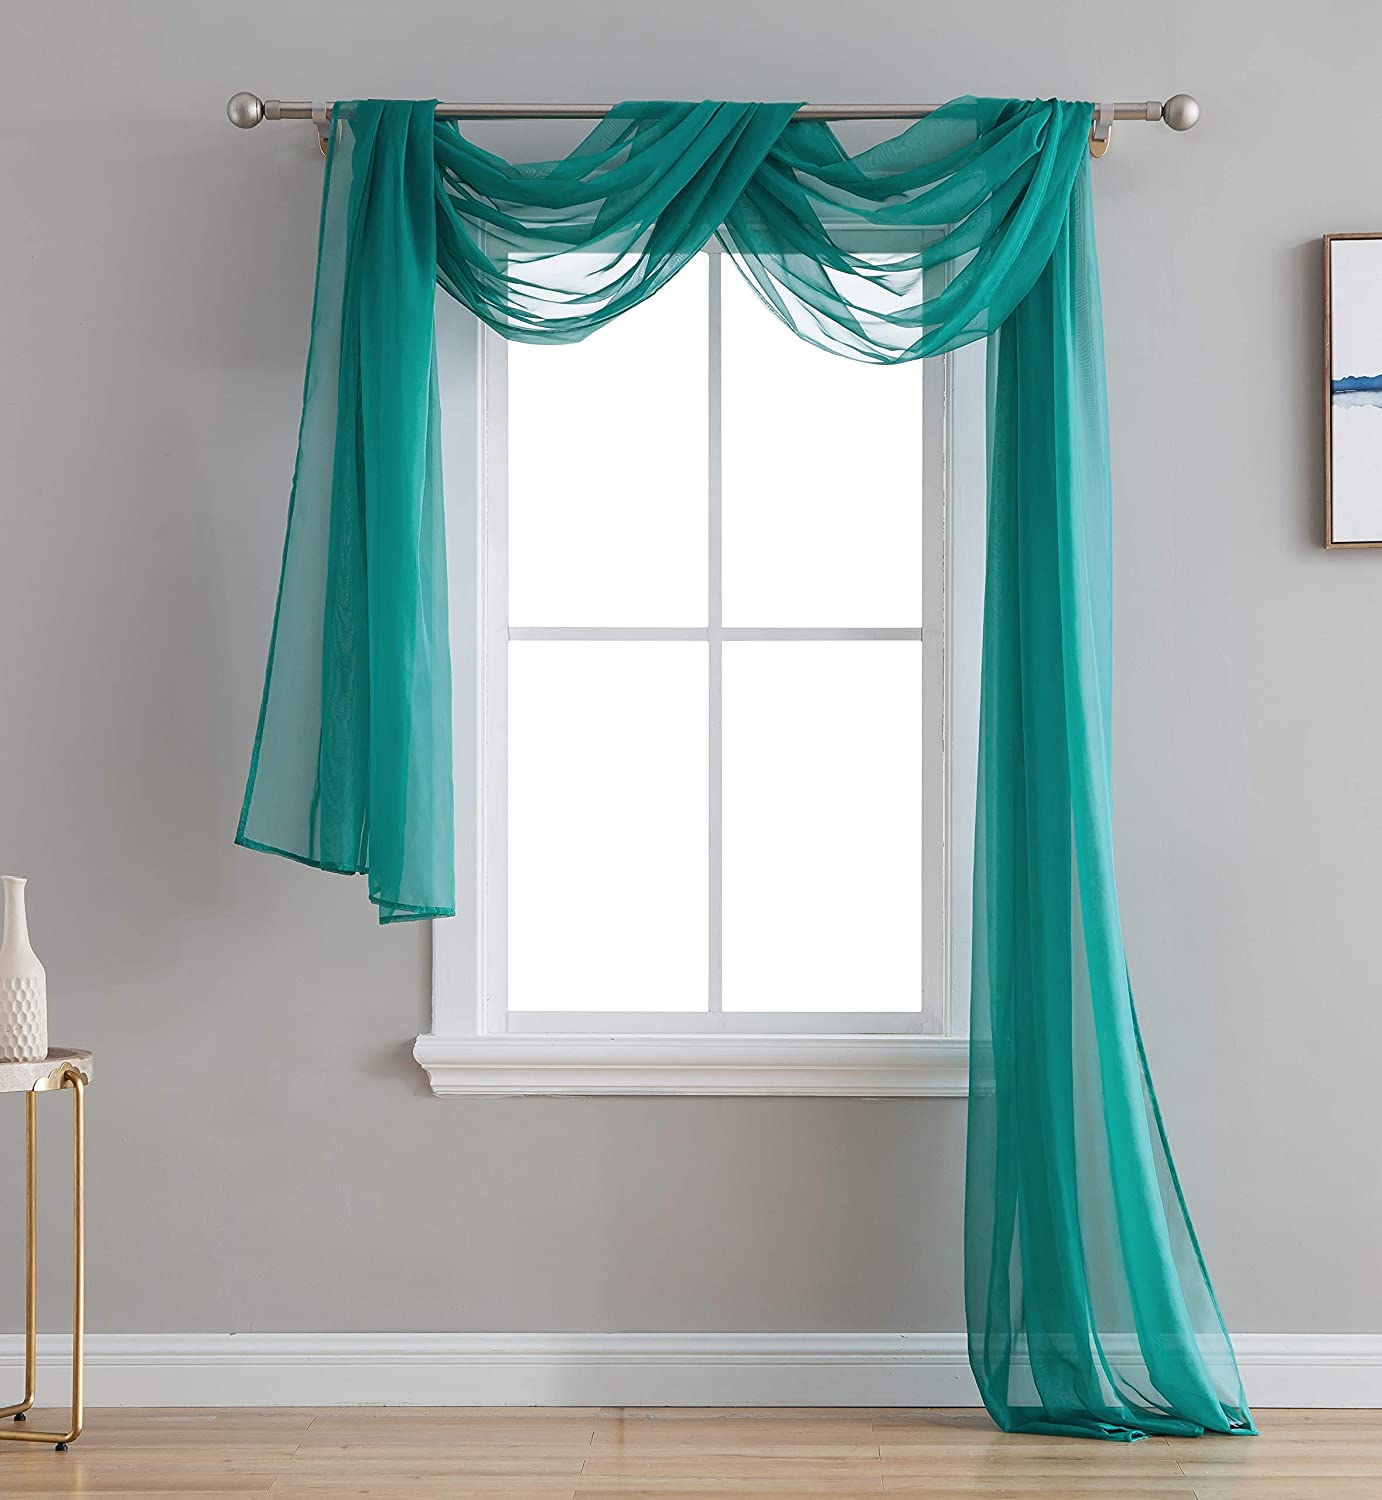 """HLC.ME Grey Teal Sheer Voile Window Curtain Swag Scarf - Valance - Fully Stitched & Hemmed - 55"""" x 216"""" Inch Long"""